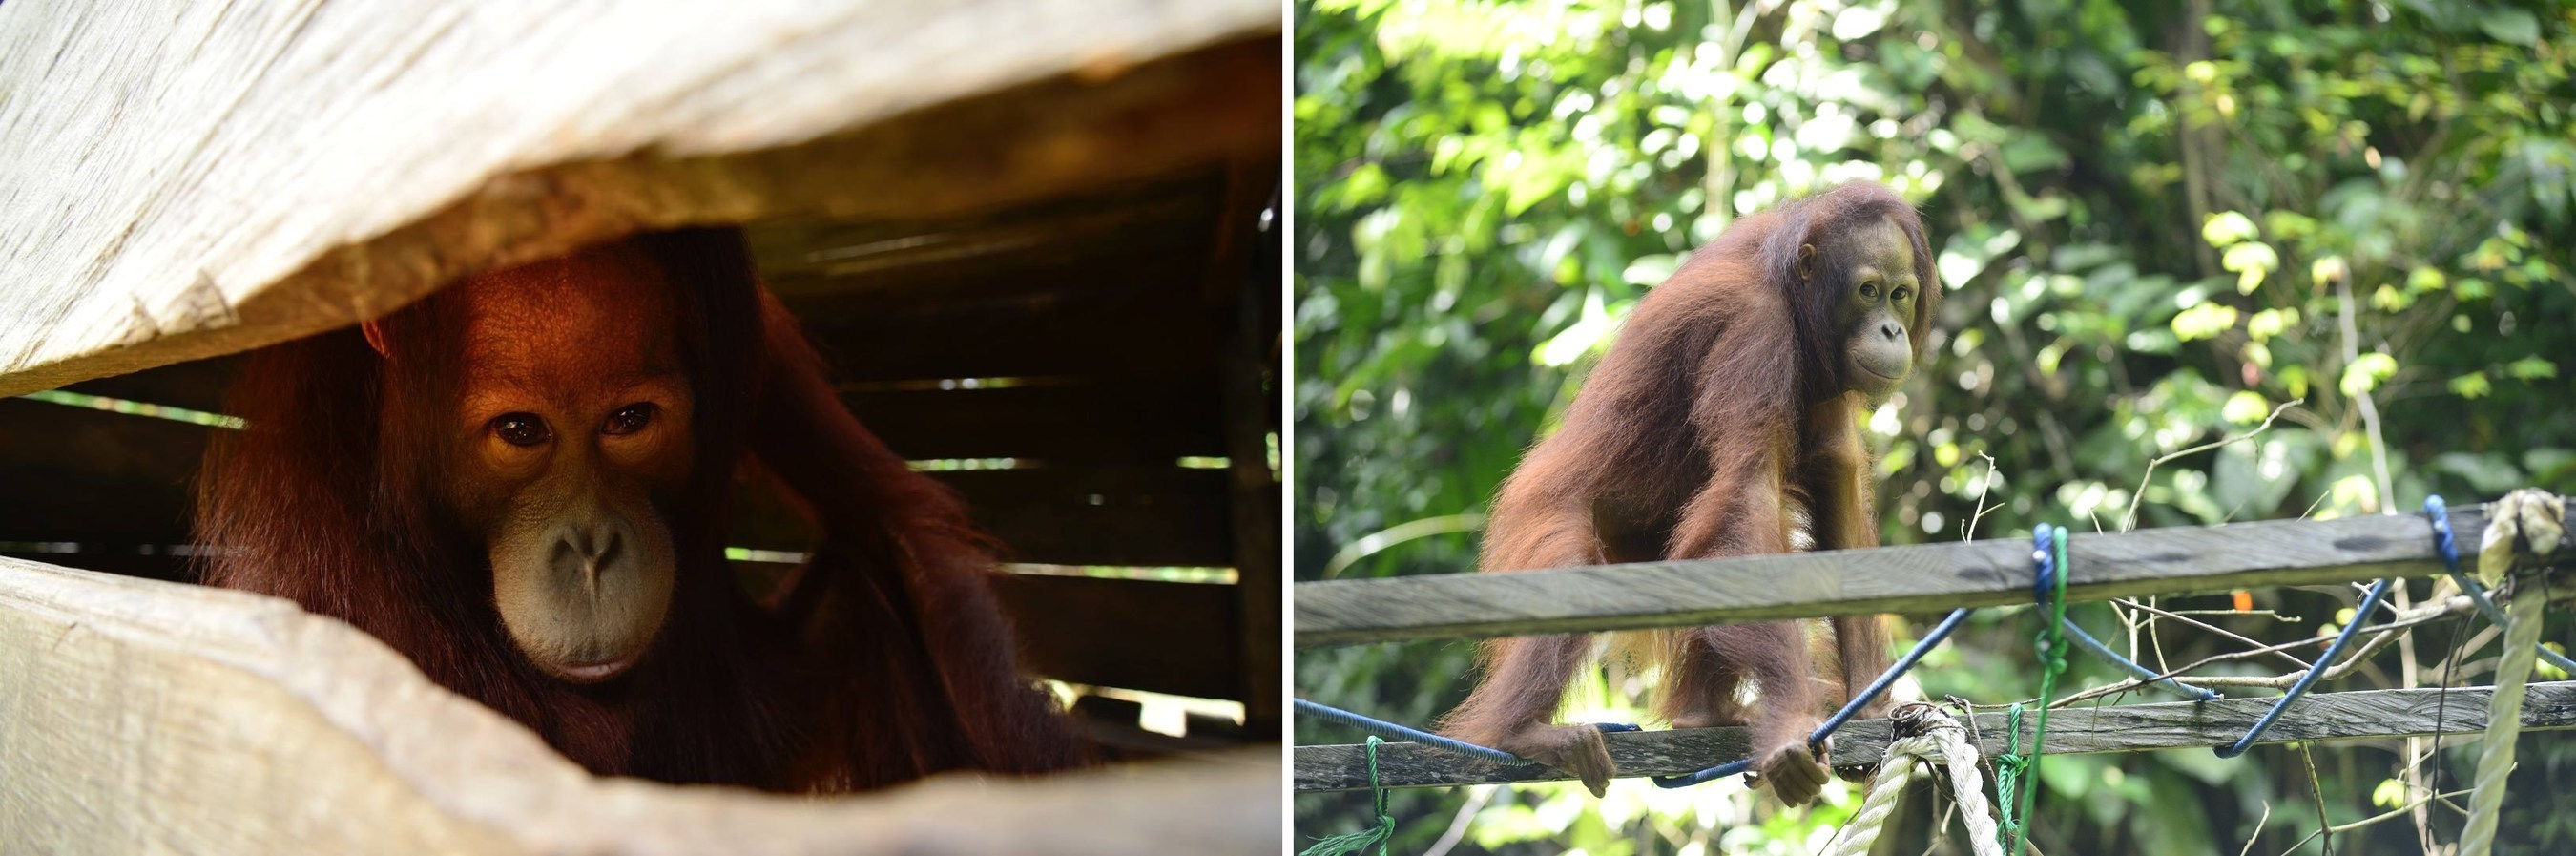 Berani, a male Borneo orangutan, was malnourished, dehydrated and found cramped in a small, dark crate (left); he was rescued by The Orangutan Project partners at Centre for Orangutan Protection from a Kalimantan village in October 2018, and was sent directly to the COP Borneo Rescue Centre, where he received urgent medical care and is now attending forest school rehabilitation to prepare him for eventual release into protected habitat (right).